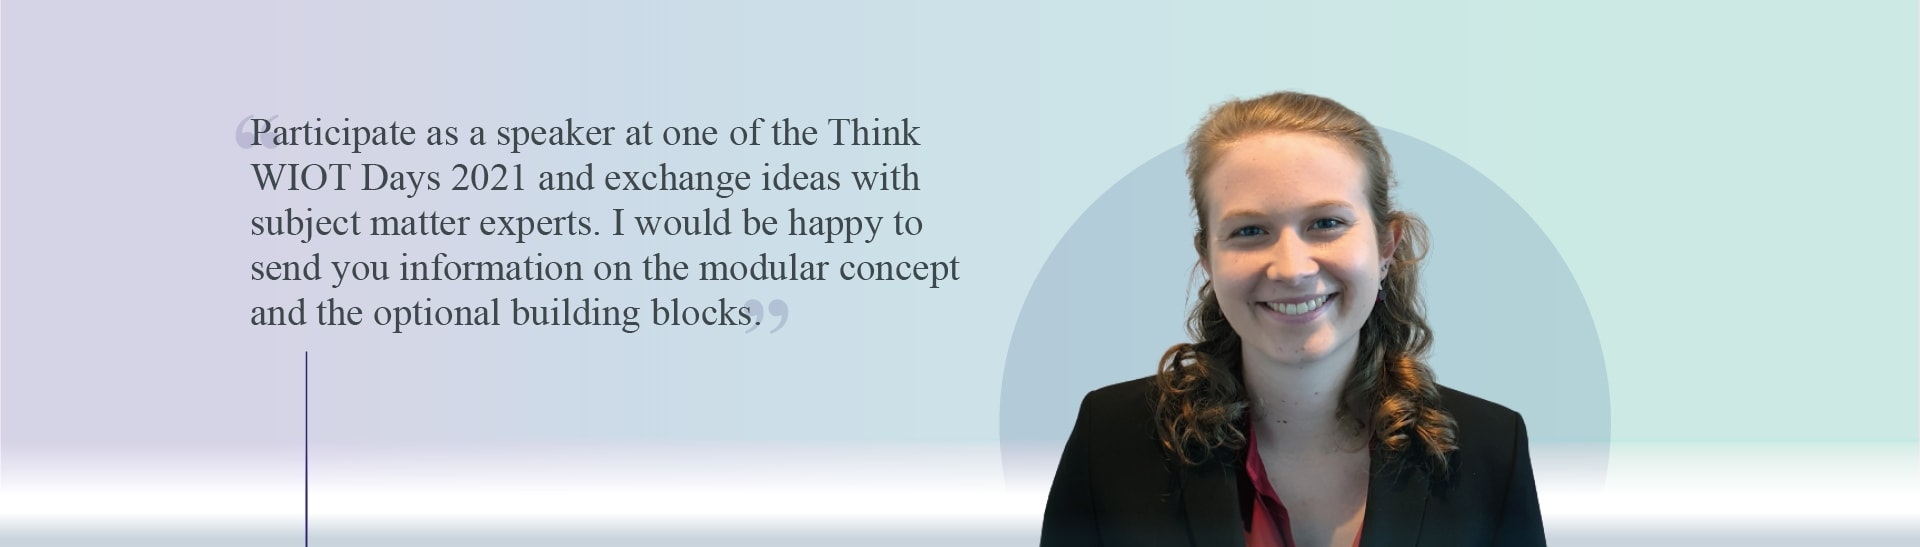 Participate as a speaker at one of the Think WIOT Days